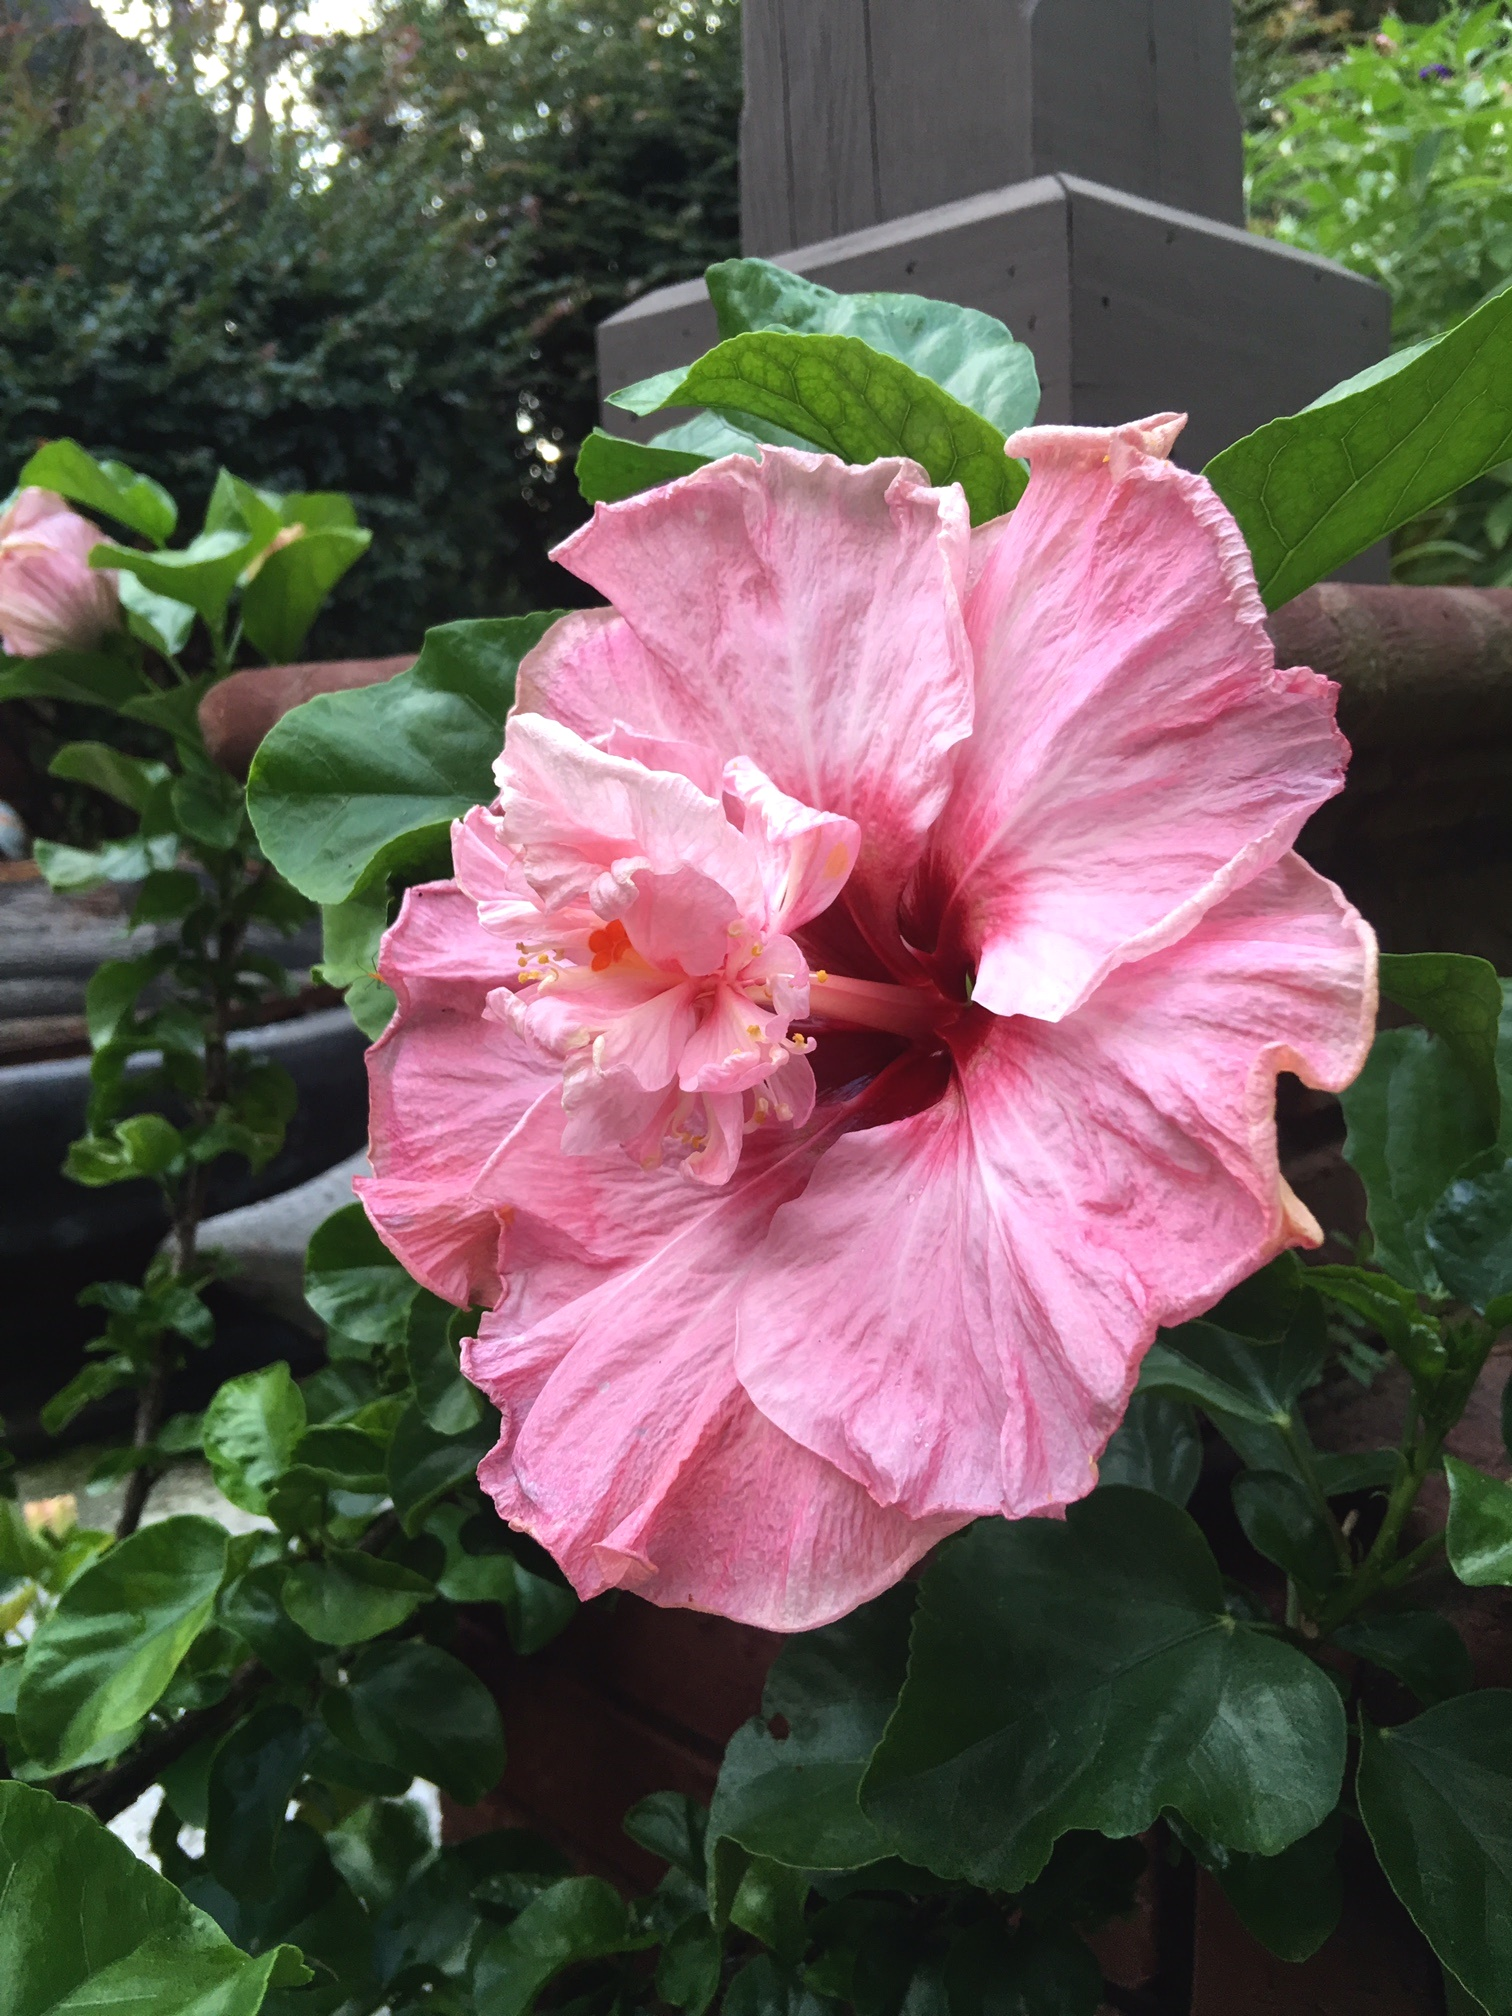 'South Pacific Sipper' is a tropical hibiscus that produces enormous blooms all summer. Hummingbirds, swallowtail butterflies and sulphurs love to visit the tropical blooms.